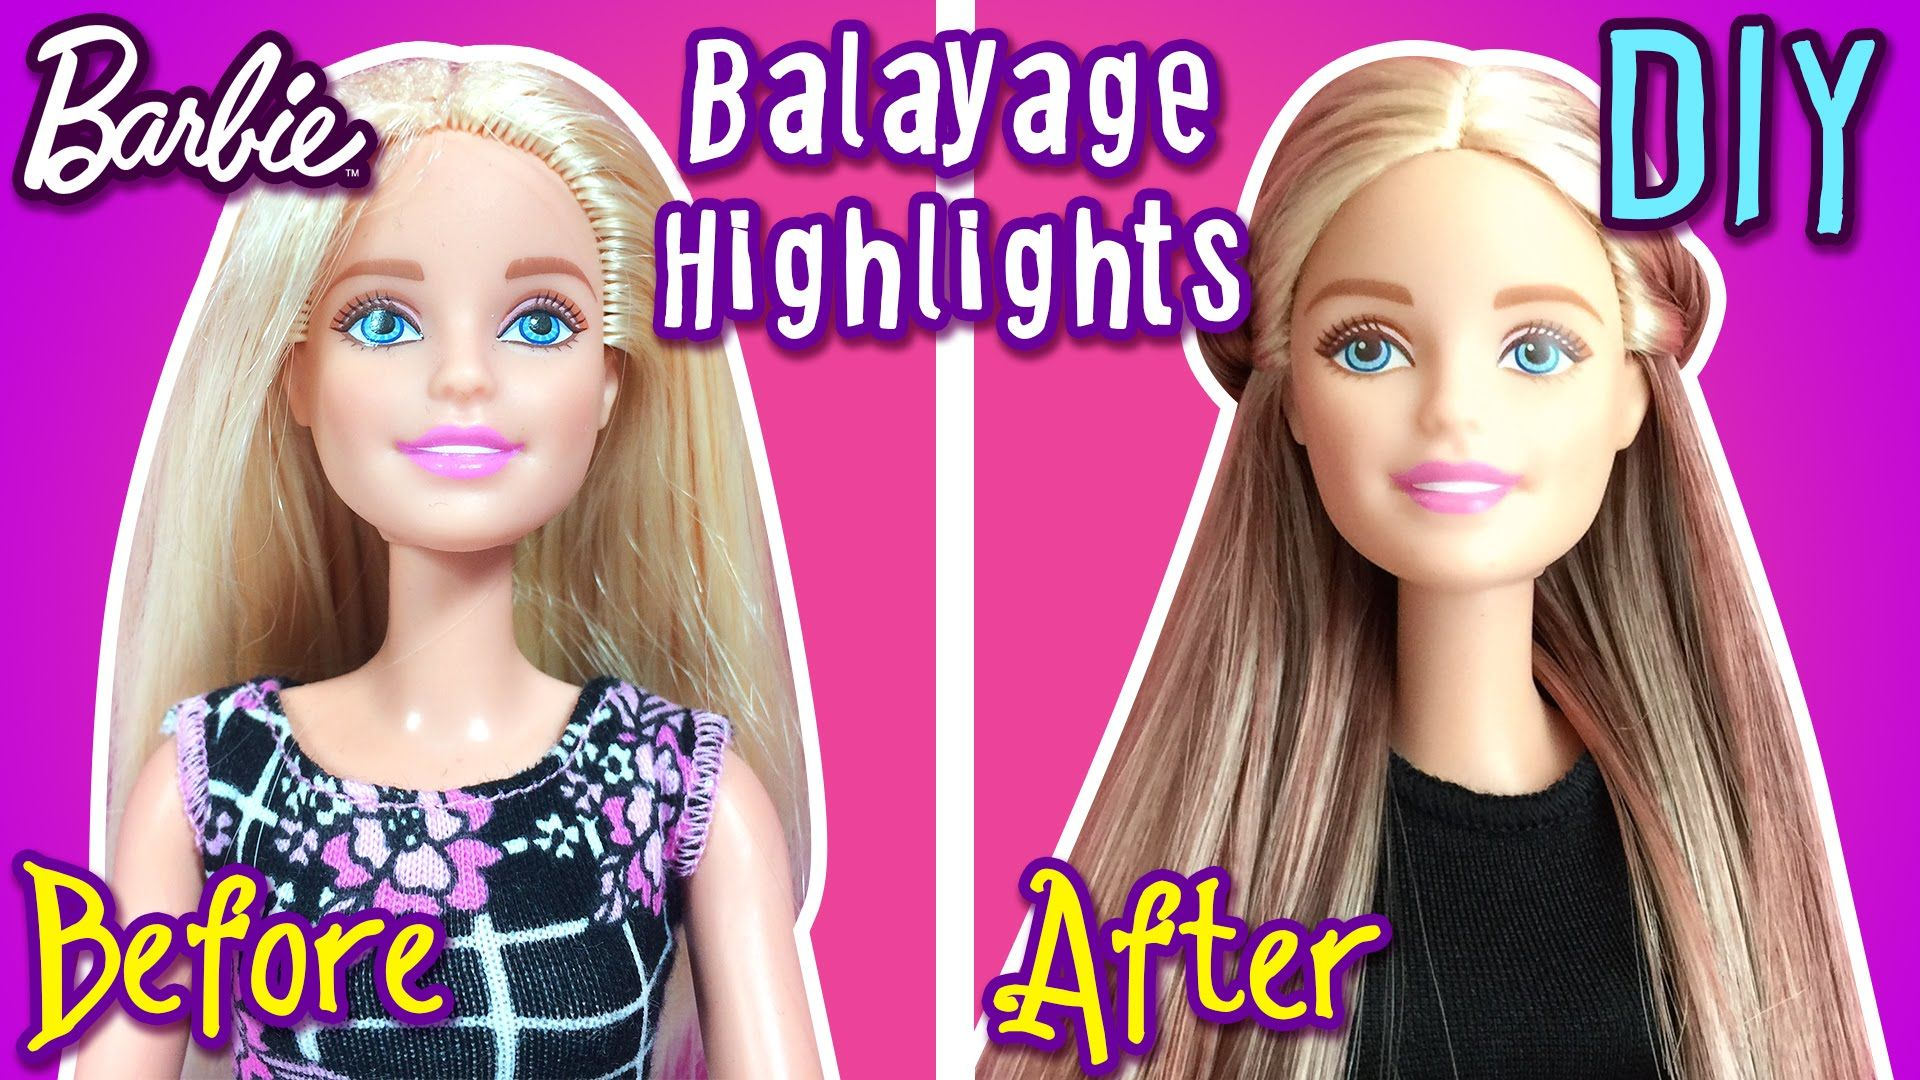 How To Make Balayage Highlights with Barbie Dolls Hair DIY Barbie